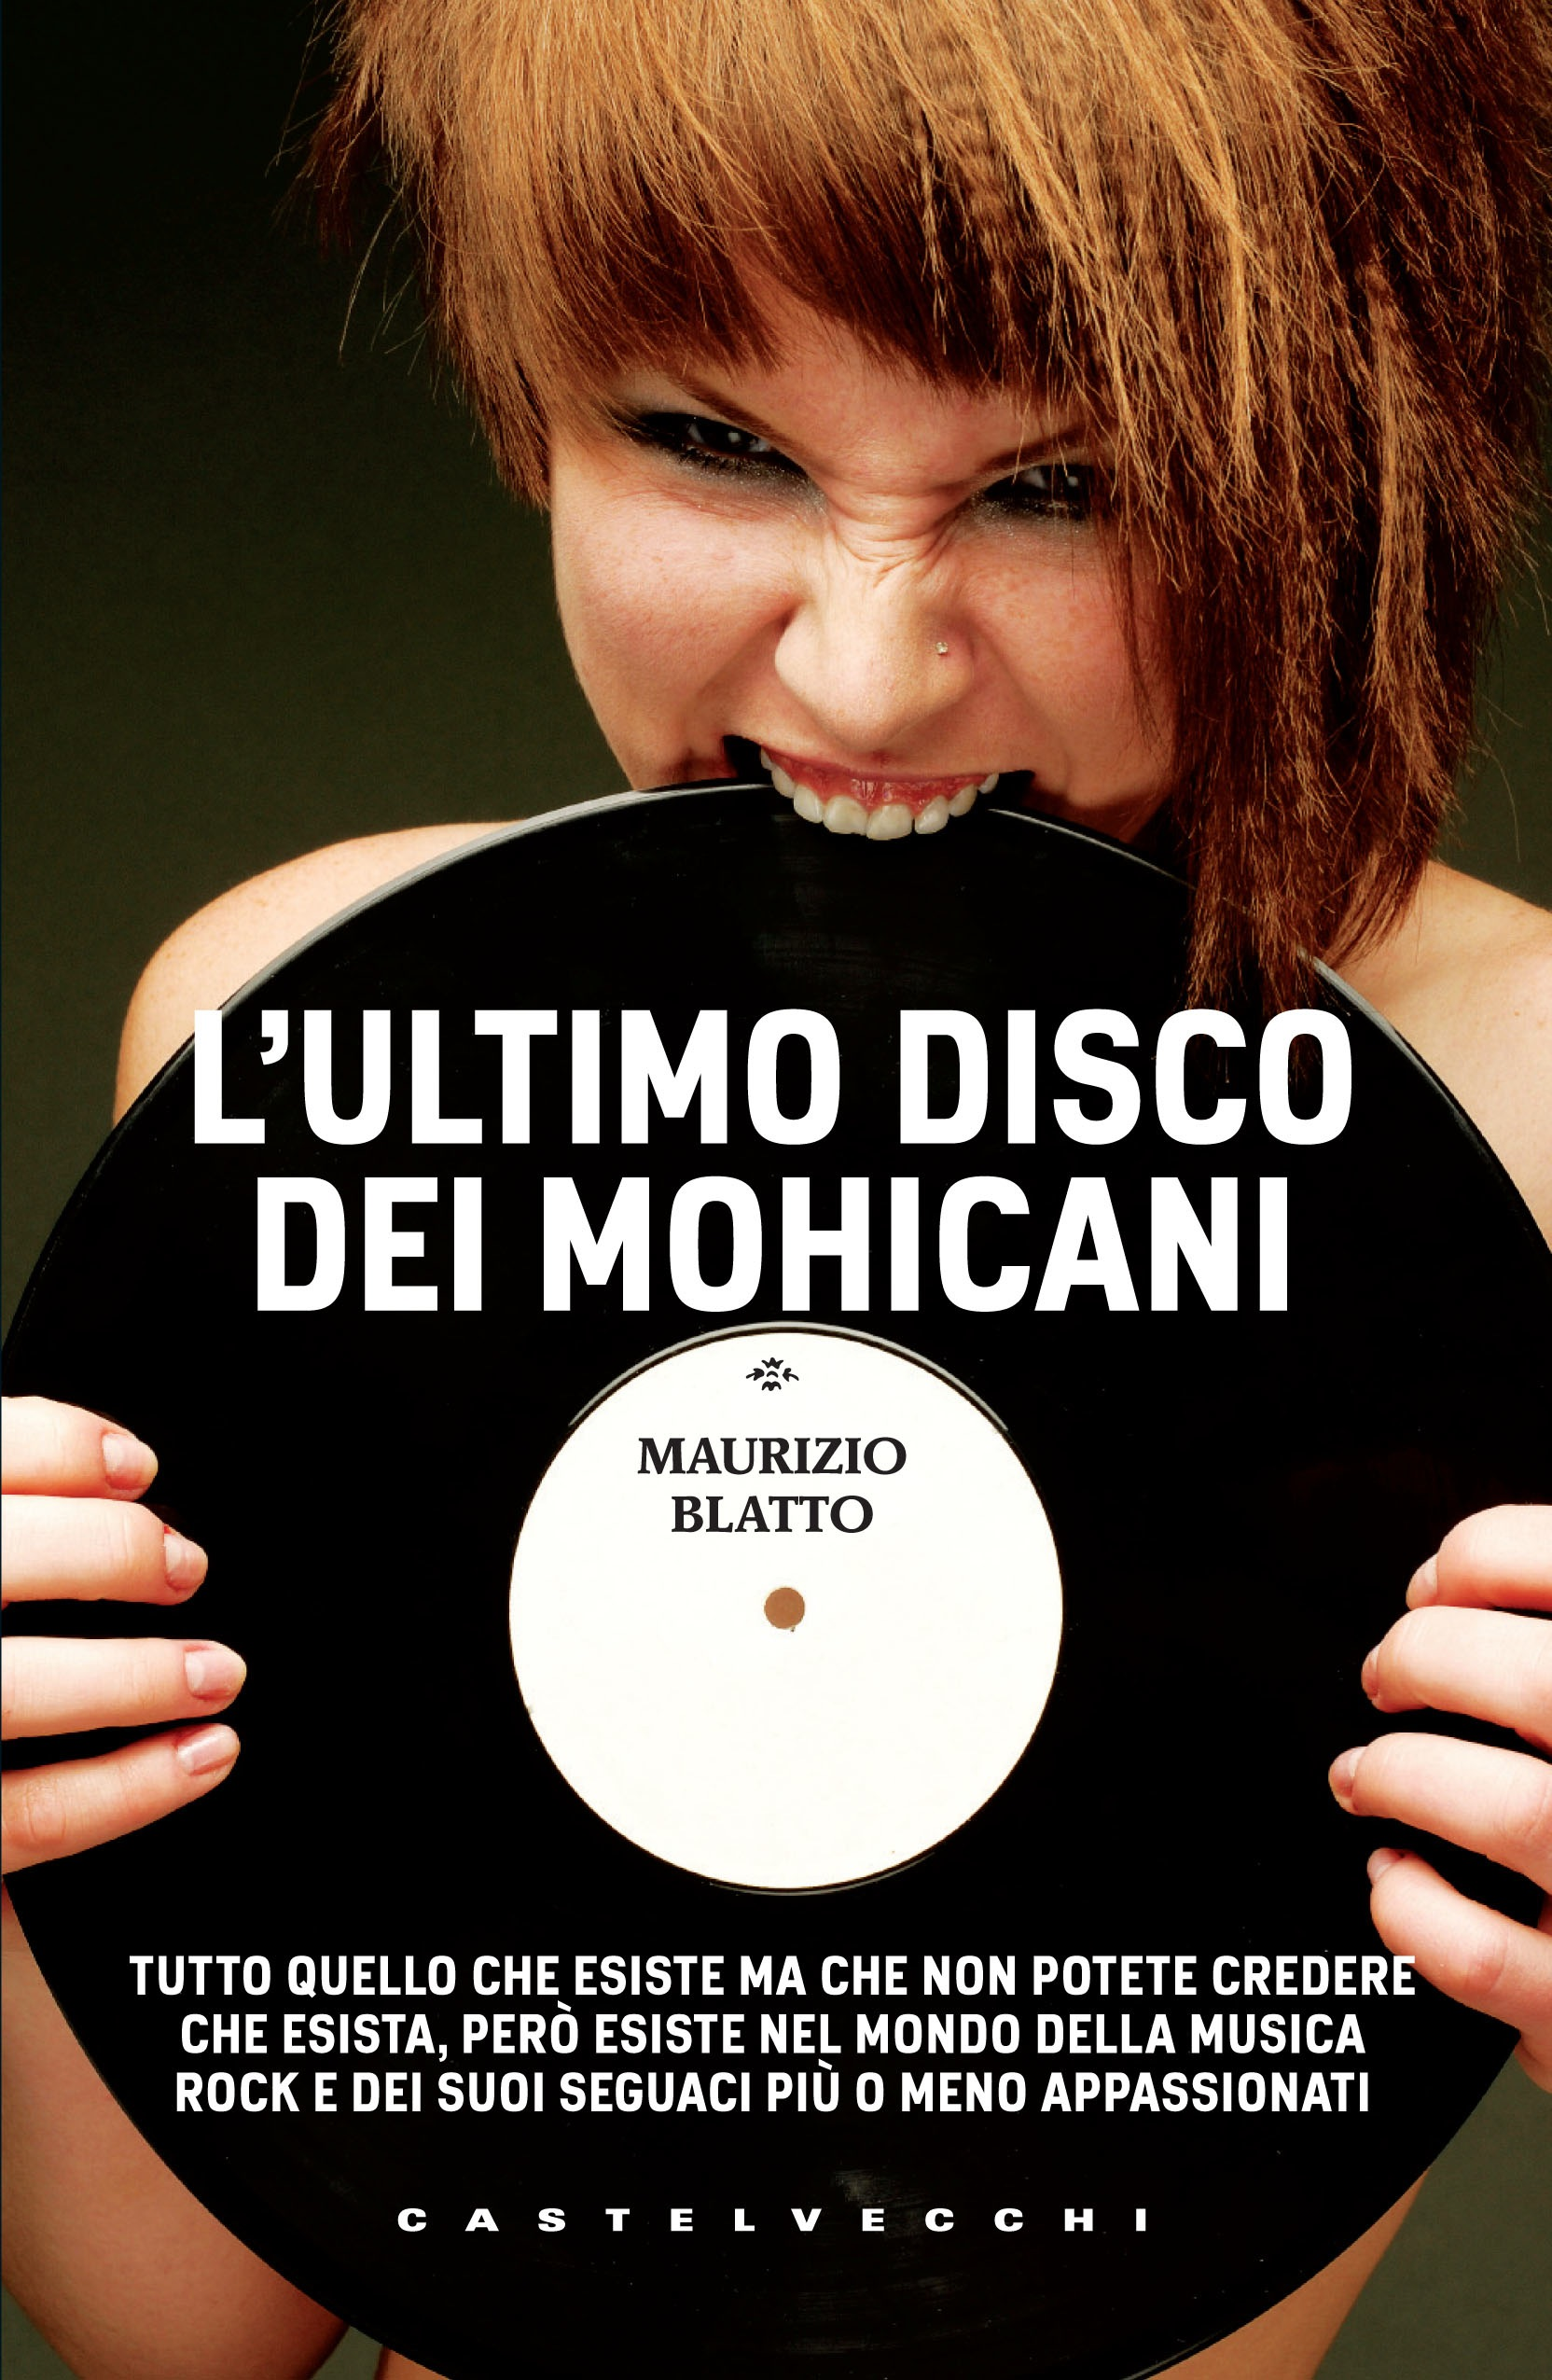 cover_mohicani_Layout 1